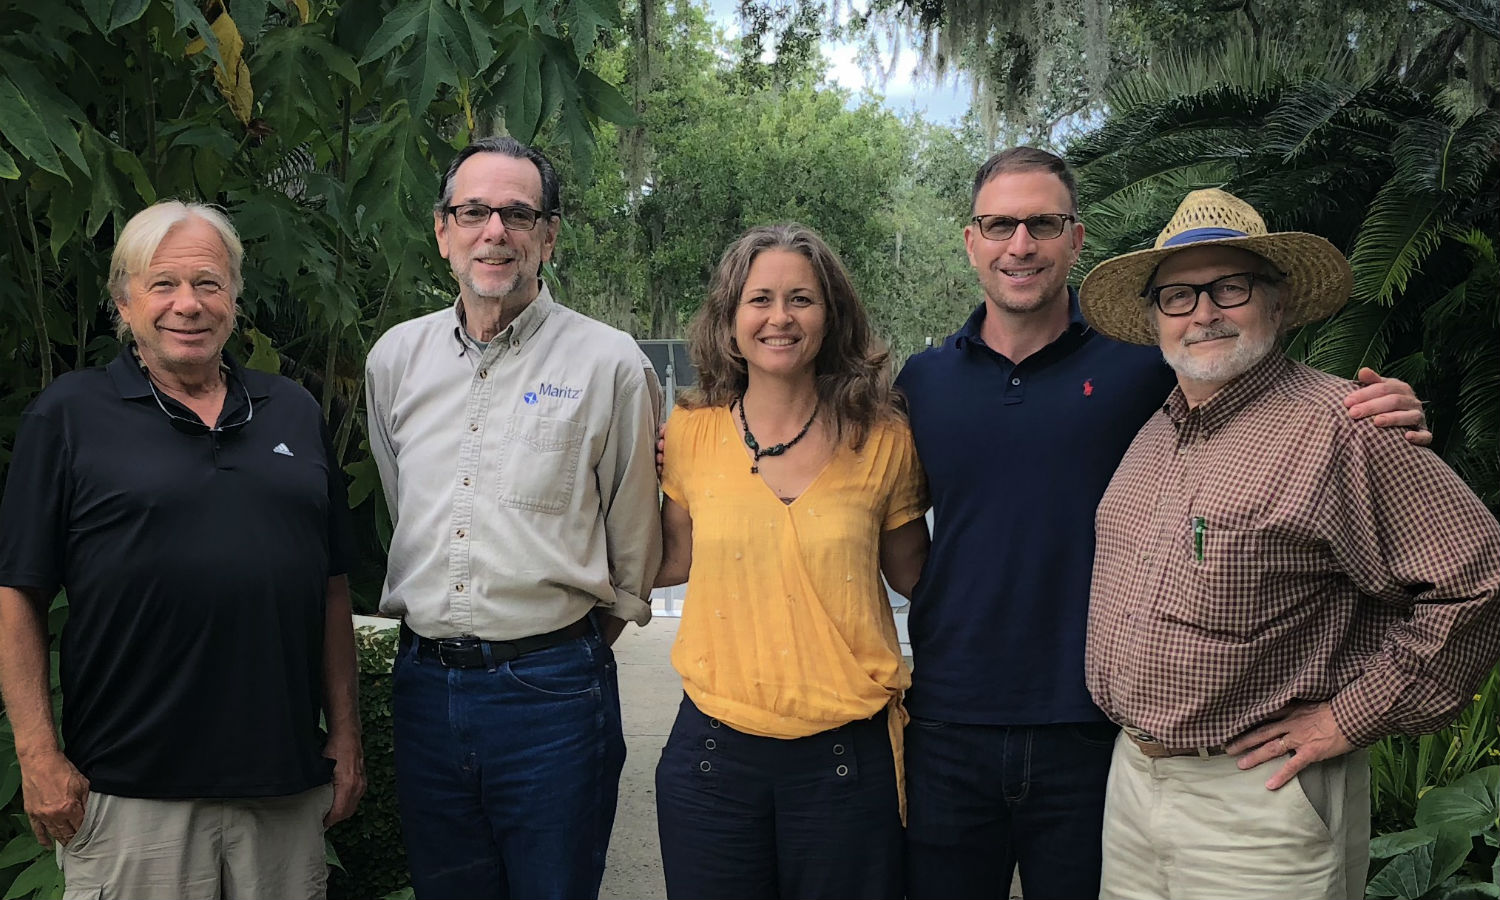 The Florida Food Policy Council is a grassroots and volunteer-run 501(c)3 organization that is bringing clarity to their state's food policies and acting as a platform for the people.